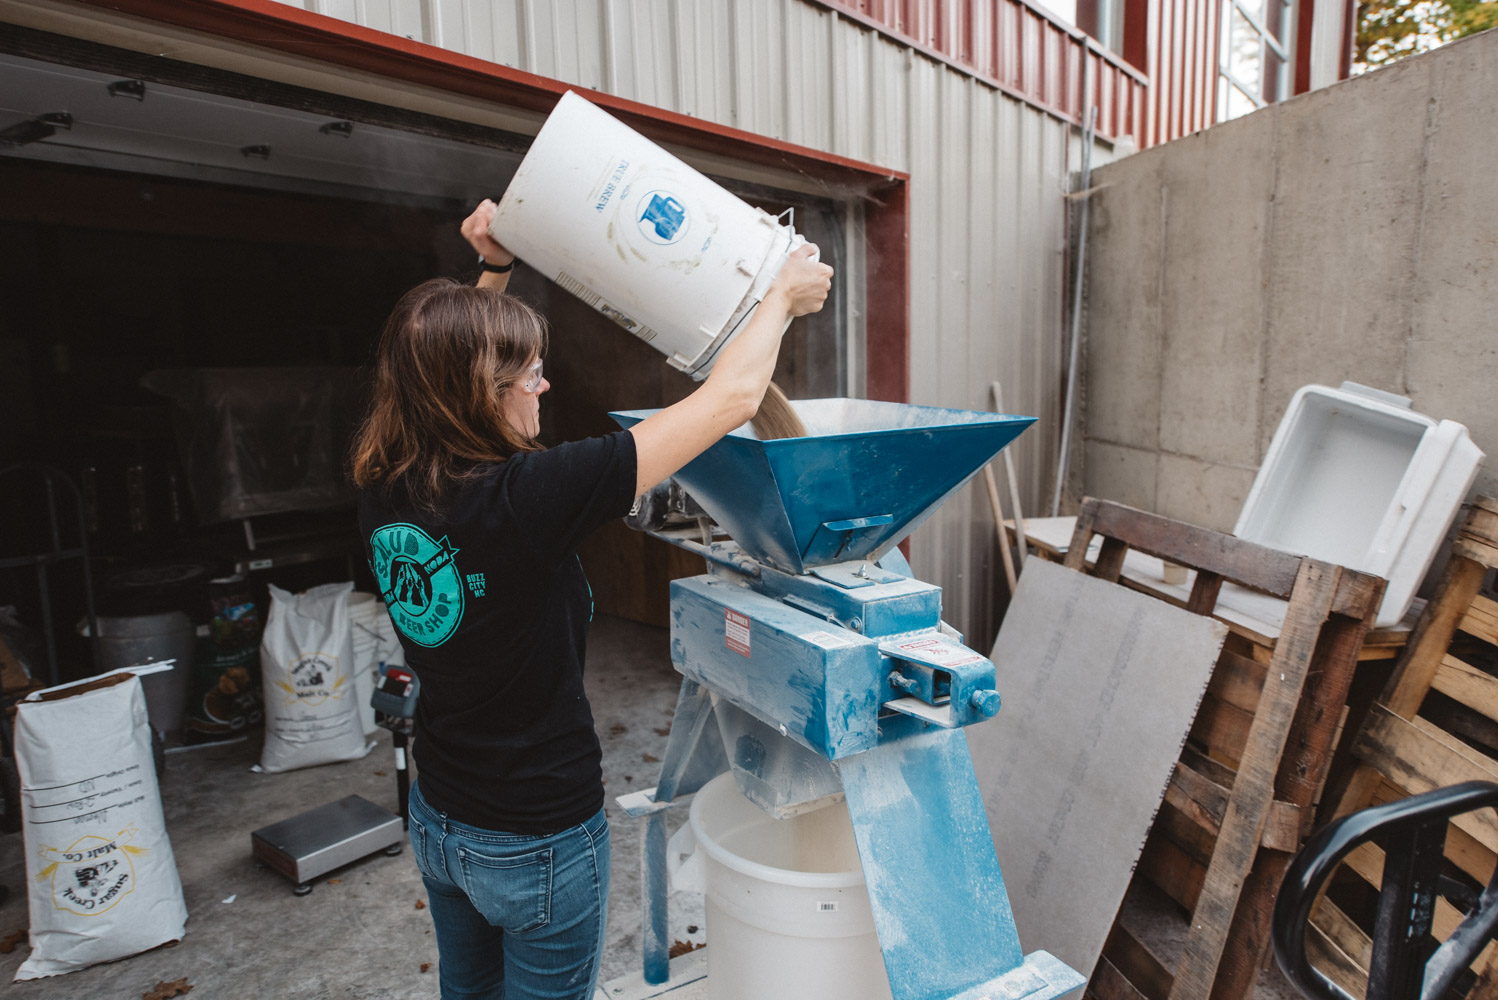 GBH in Residence — Foraging a Beer with Scratch Brewing Company